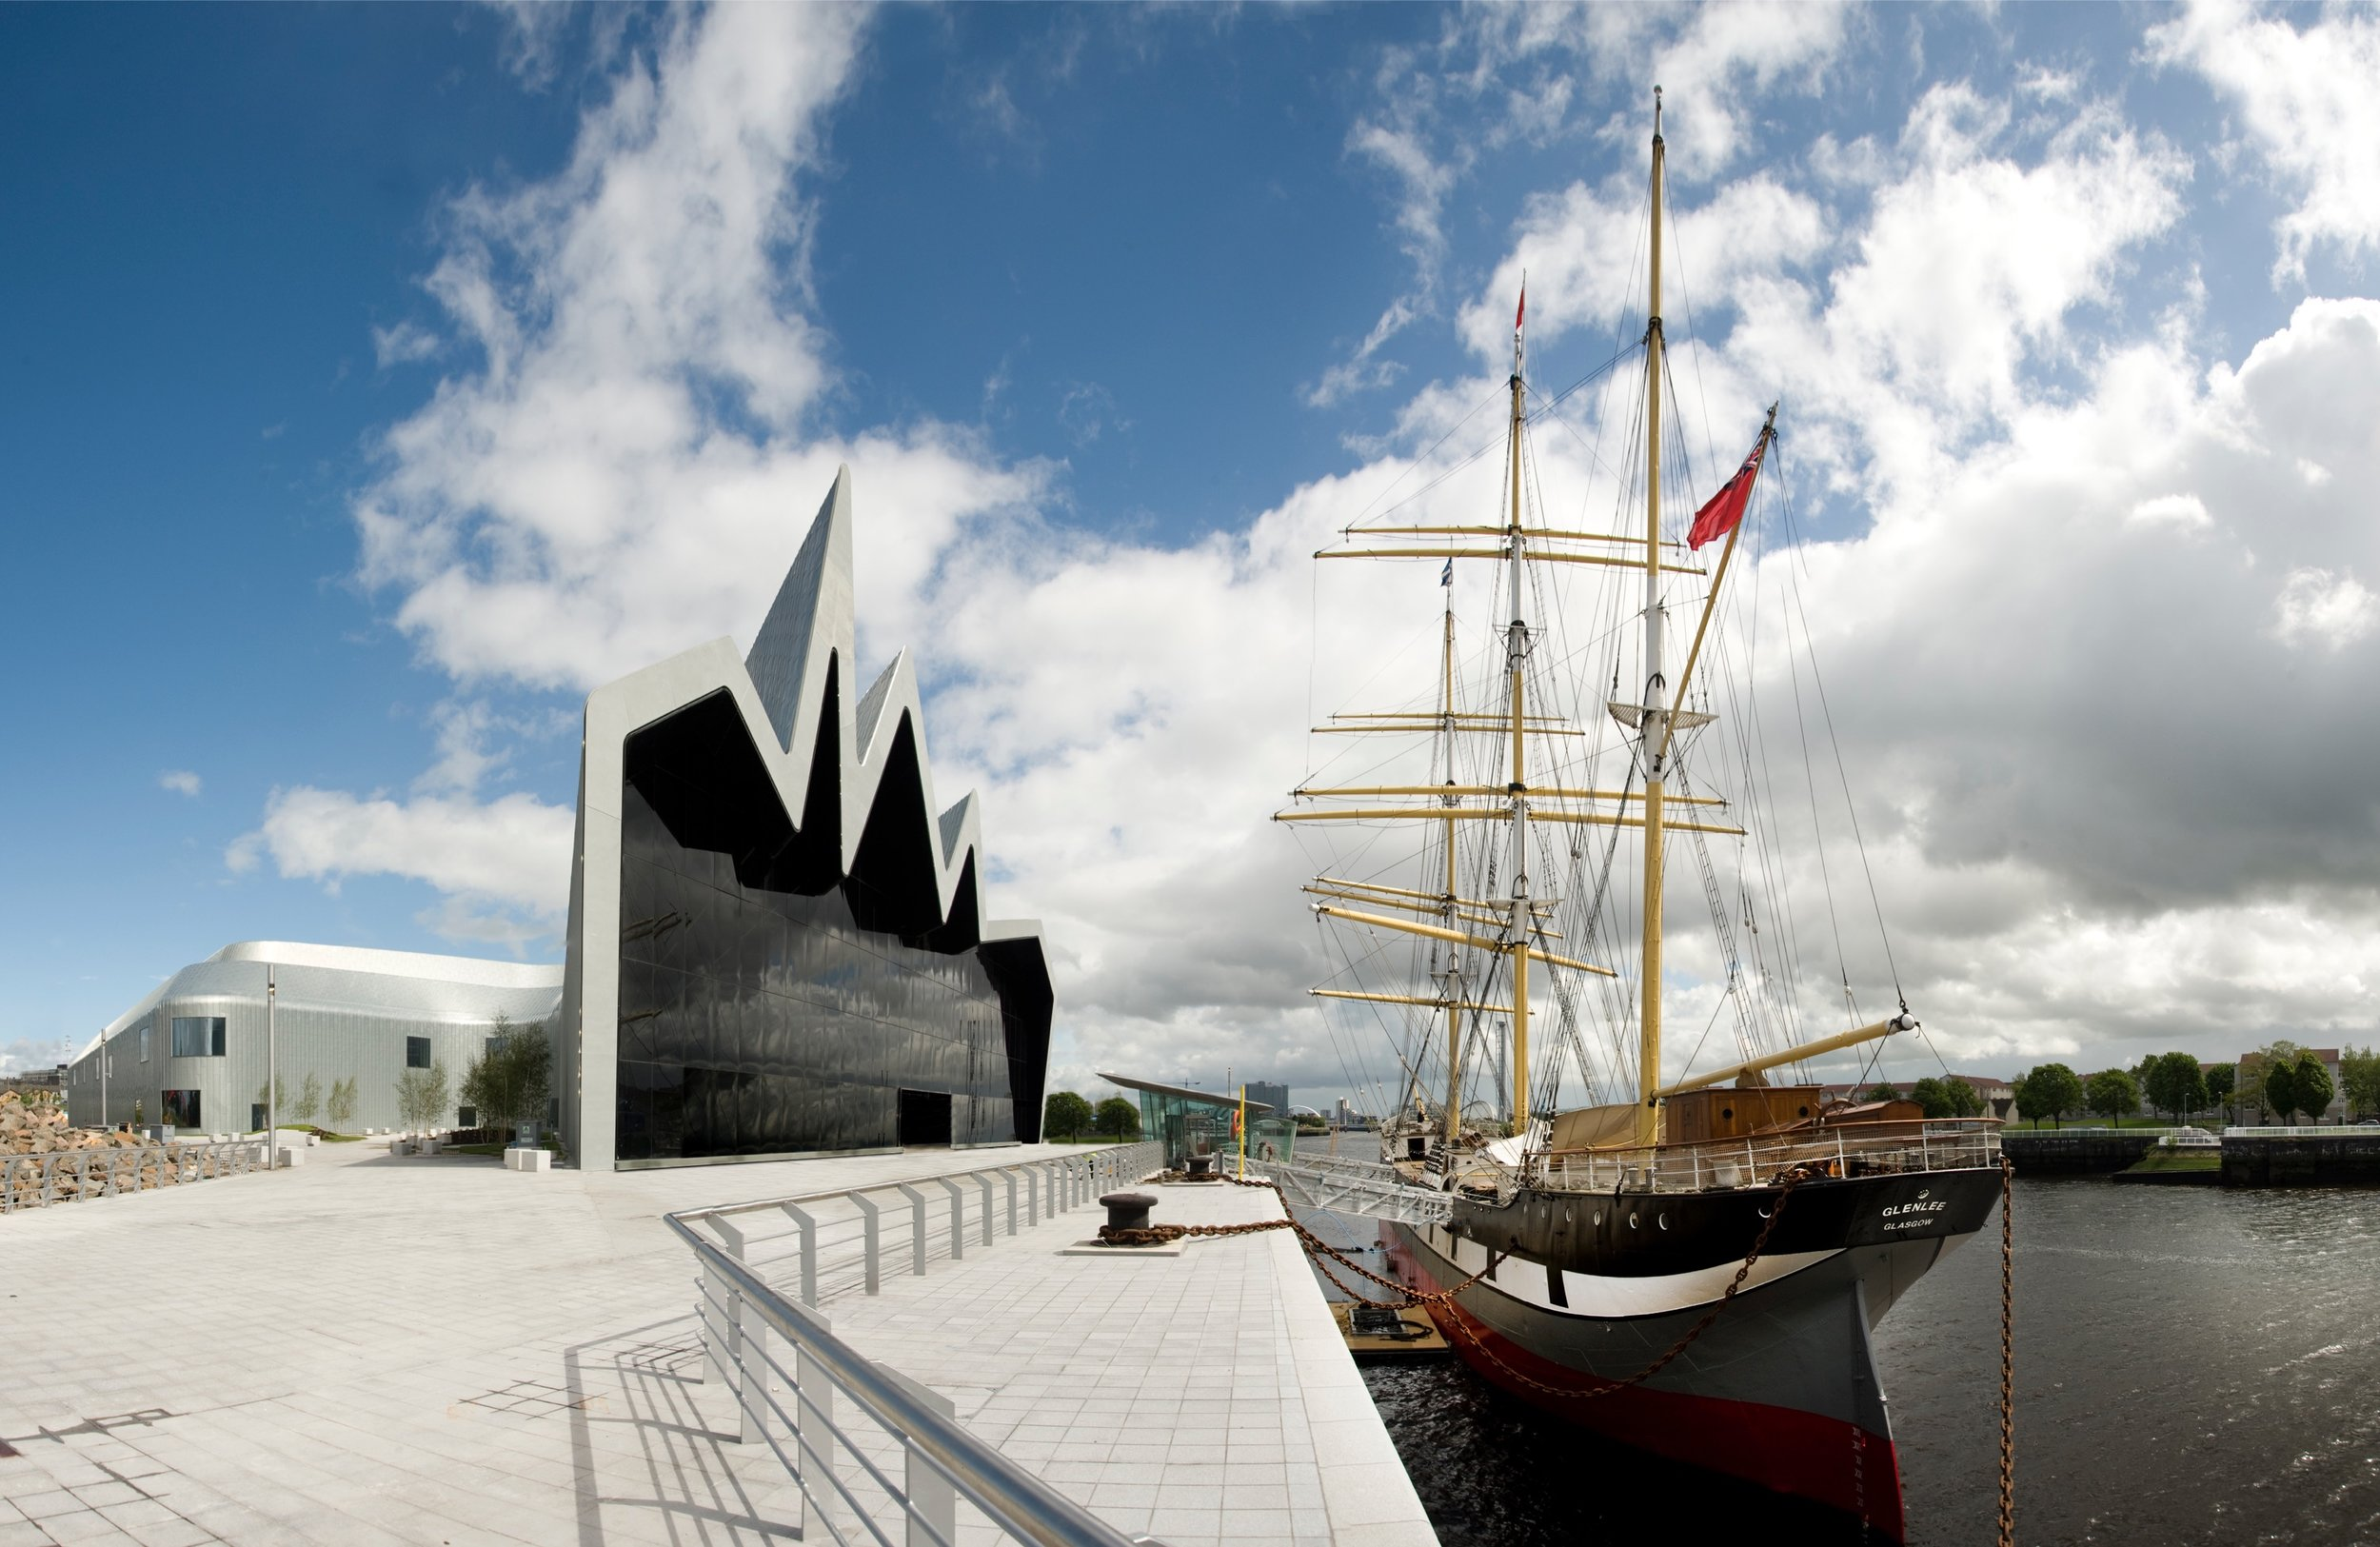 riverside-museum-and-tall-ship-2.jpg